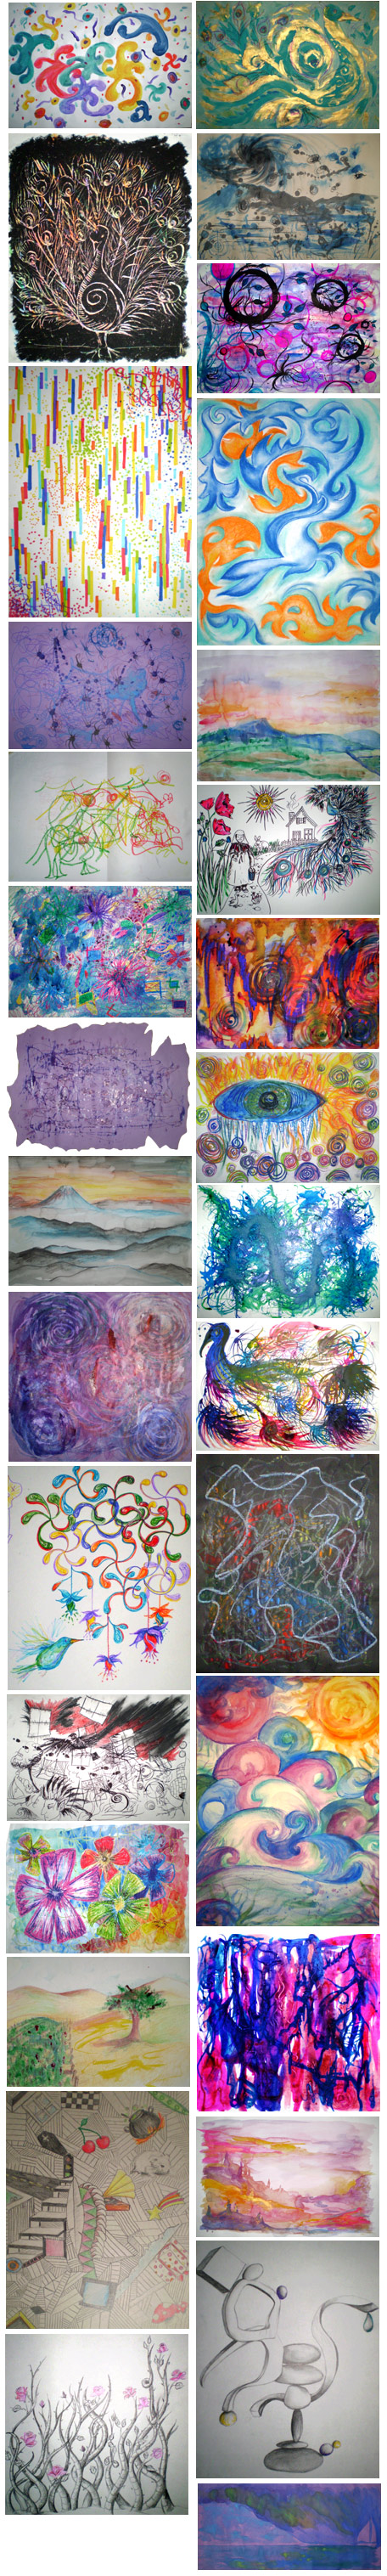 A year of art therapy